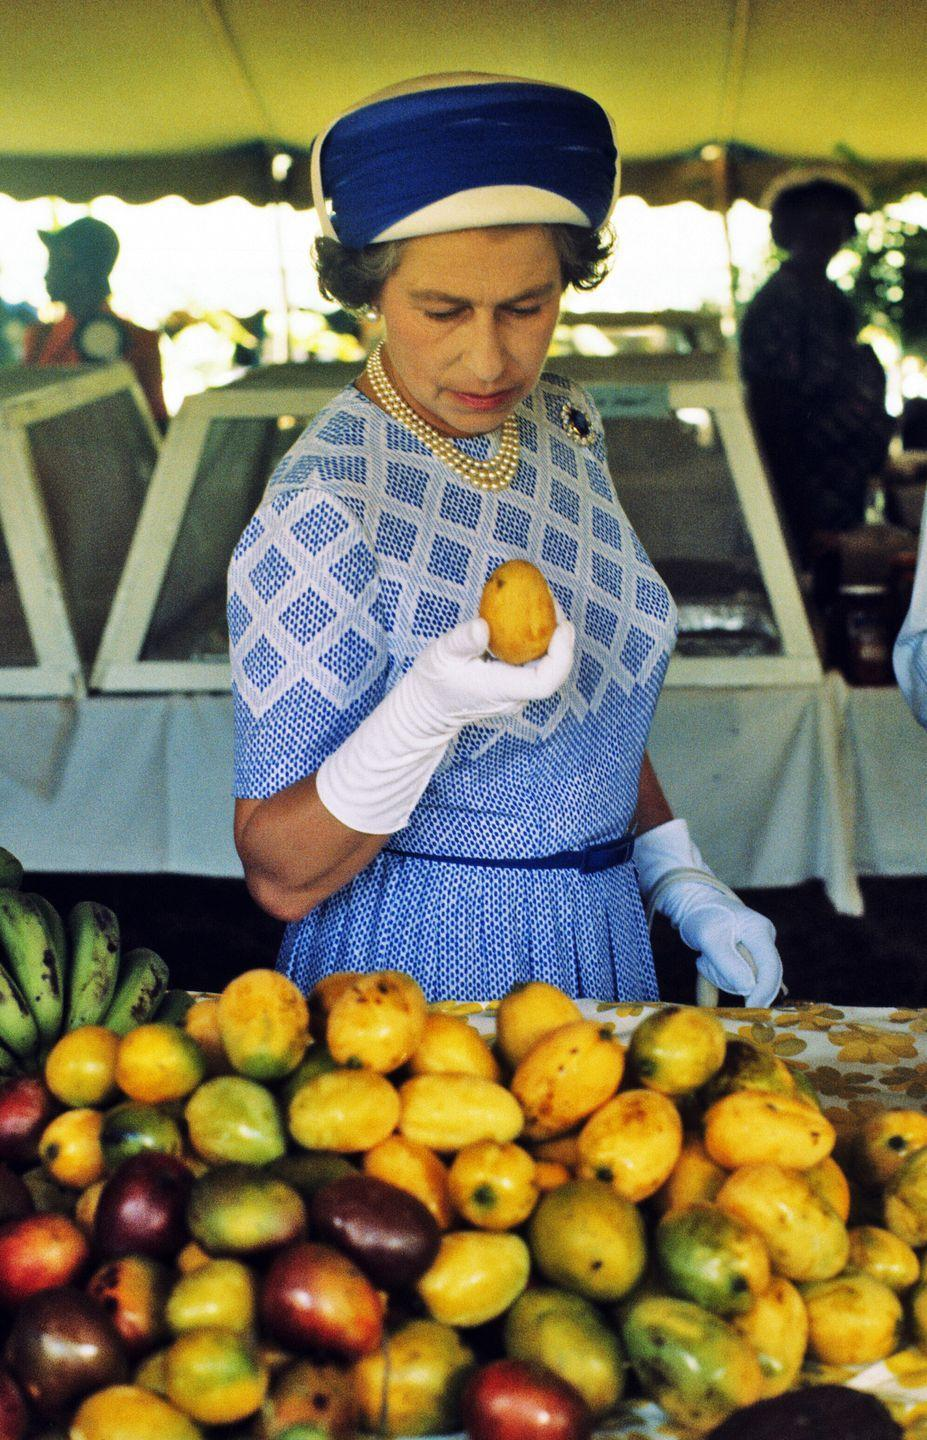 <p>In October 1977, the Queen made a royal trip to the British Virgin Islands, where she had a chance to tour a market. Of course she went straight for the mangos, which are notoriously a favorite food of Her Majesty—she even travels with Bilawal House mangos.</p>